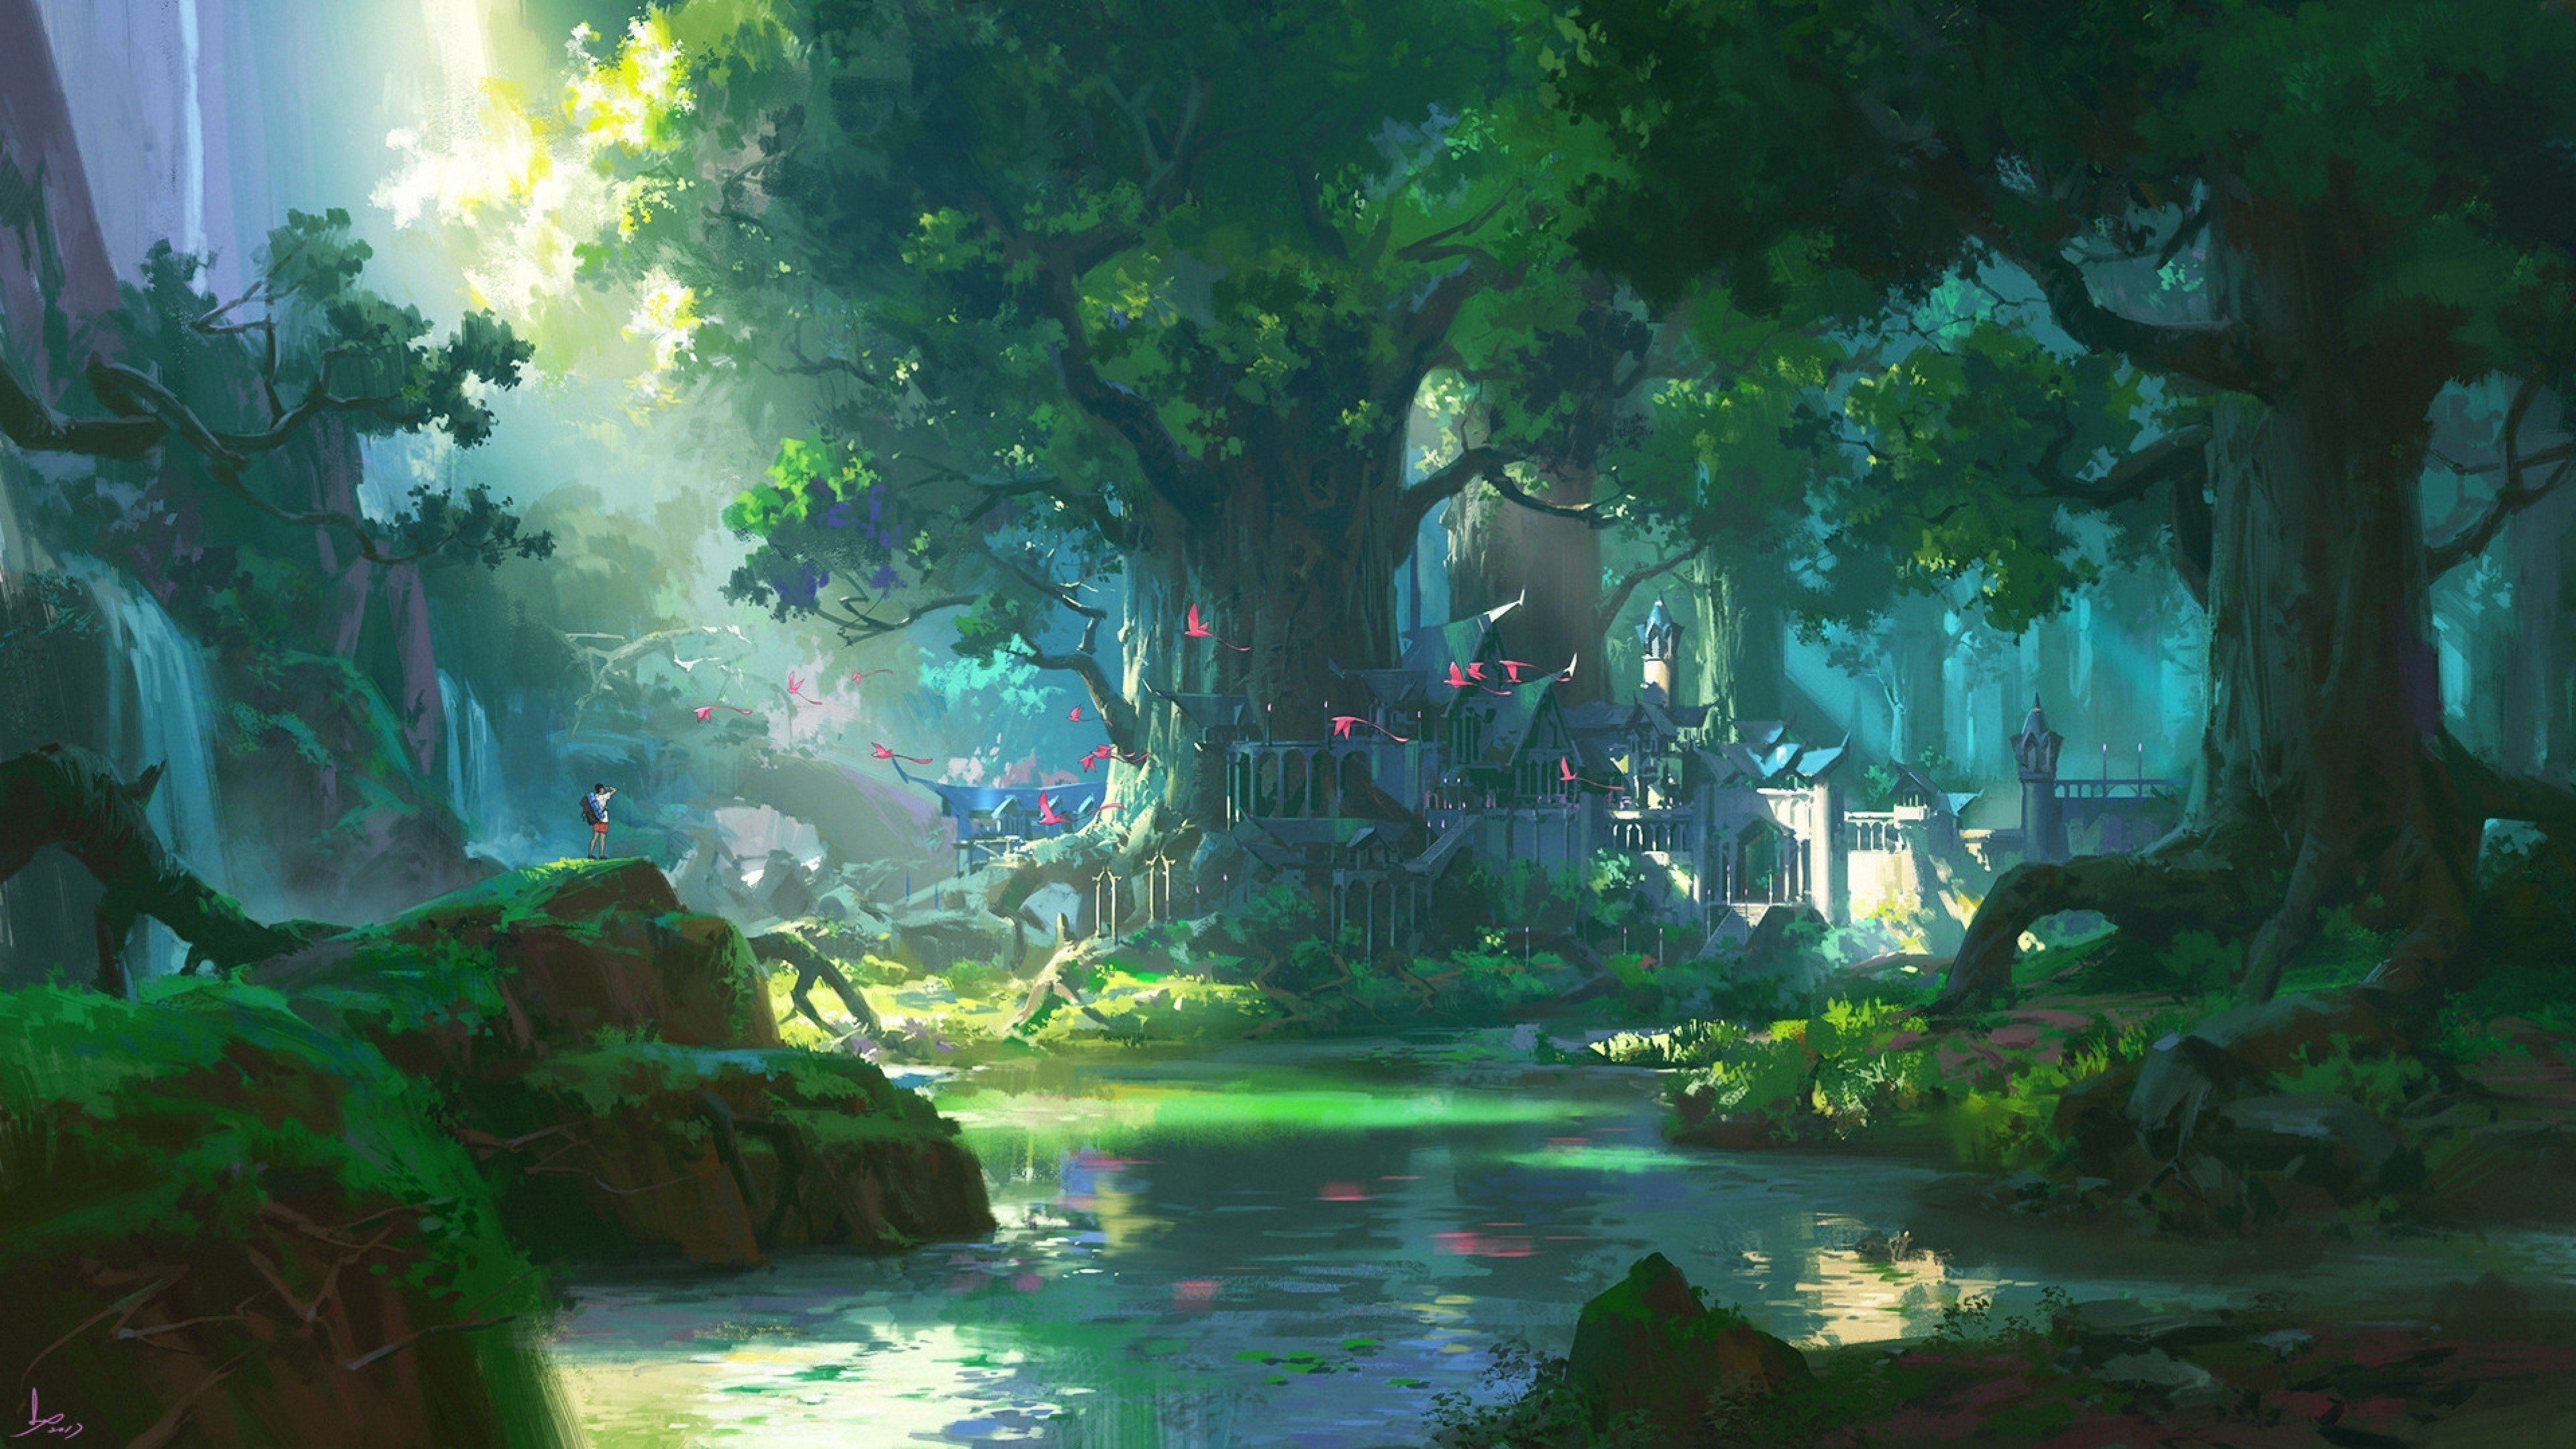 Anime Landscape, Forest, Big Trees, Water, Foliage,